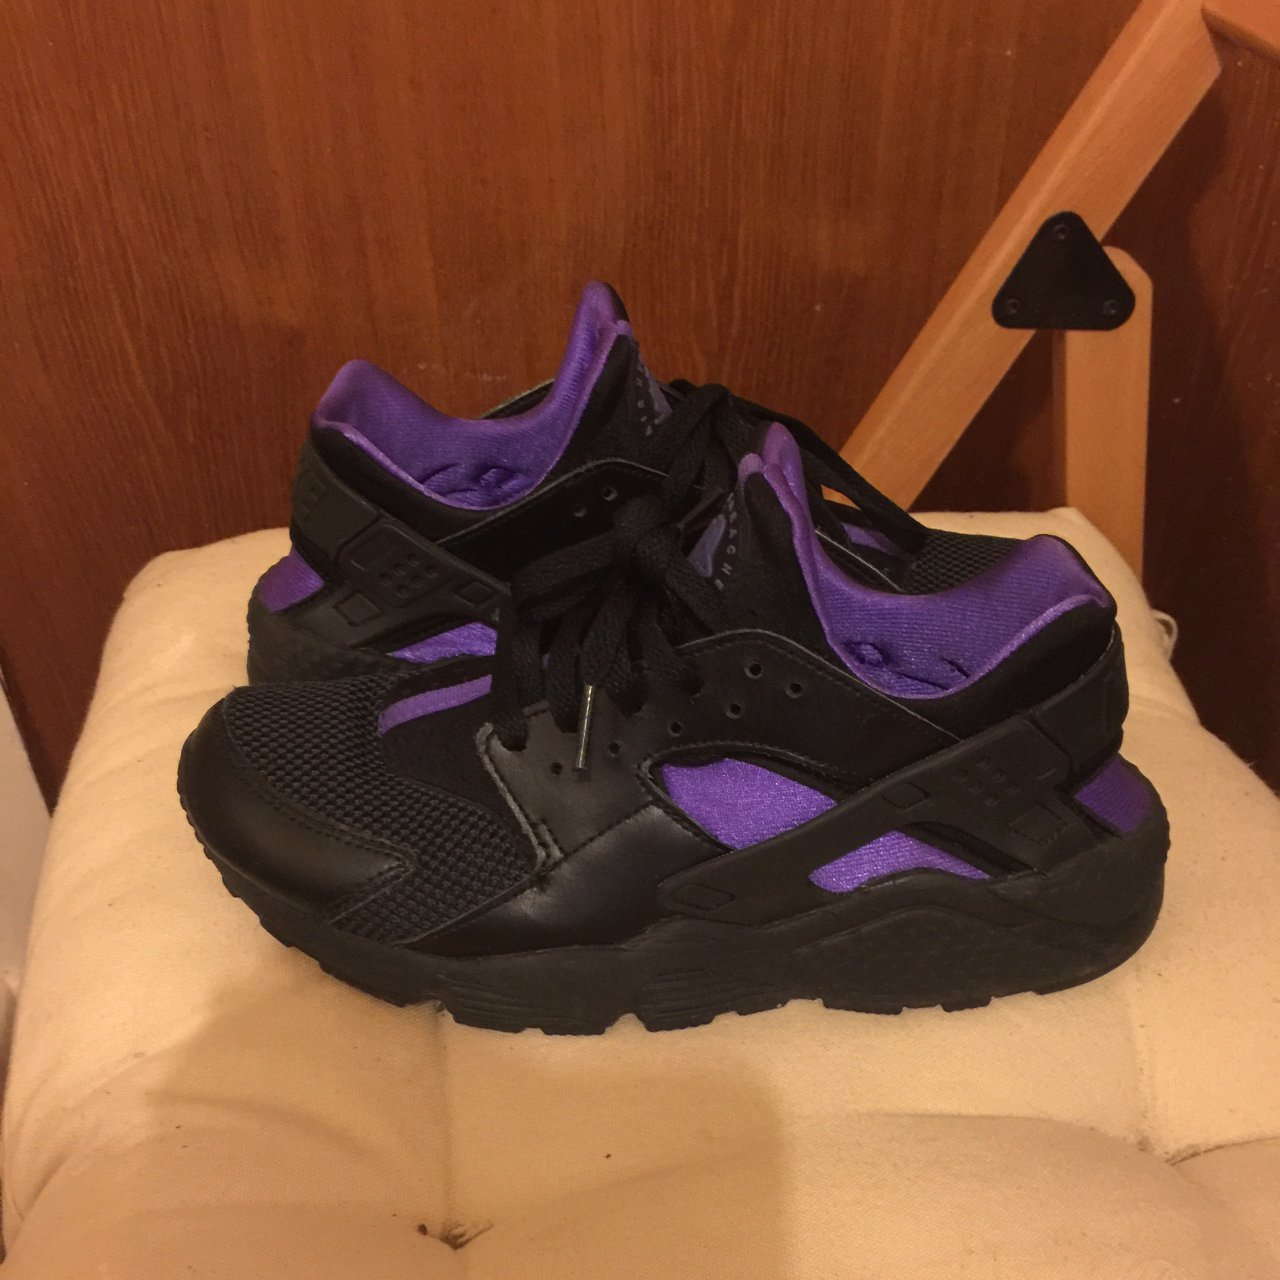 Air 6 6 Huarache Nike Tight 5 Would Worn Fit Size Depop 0OPwnk